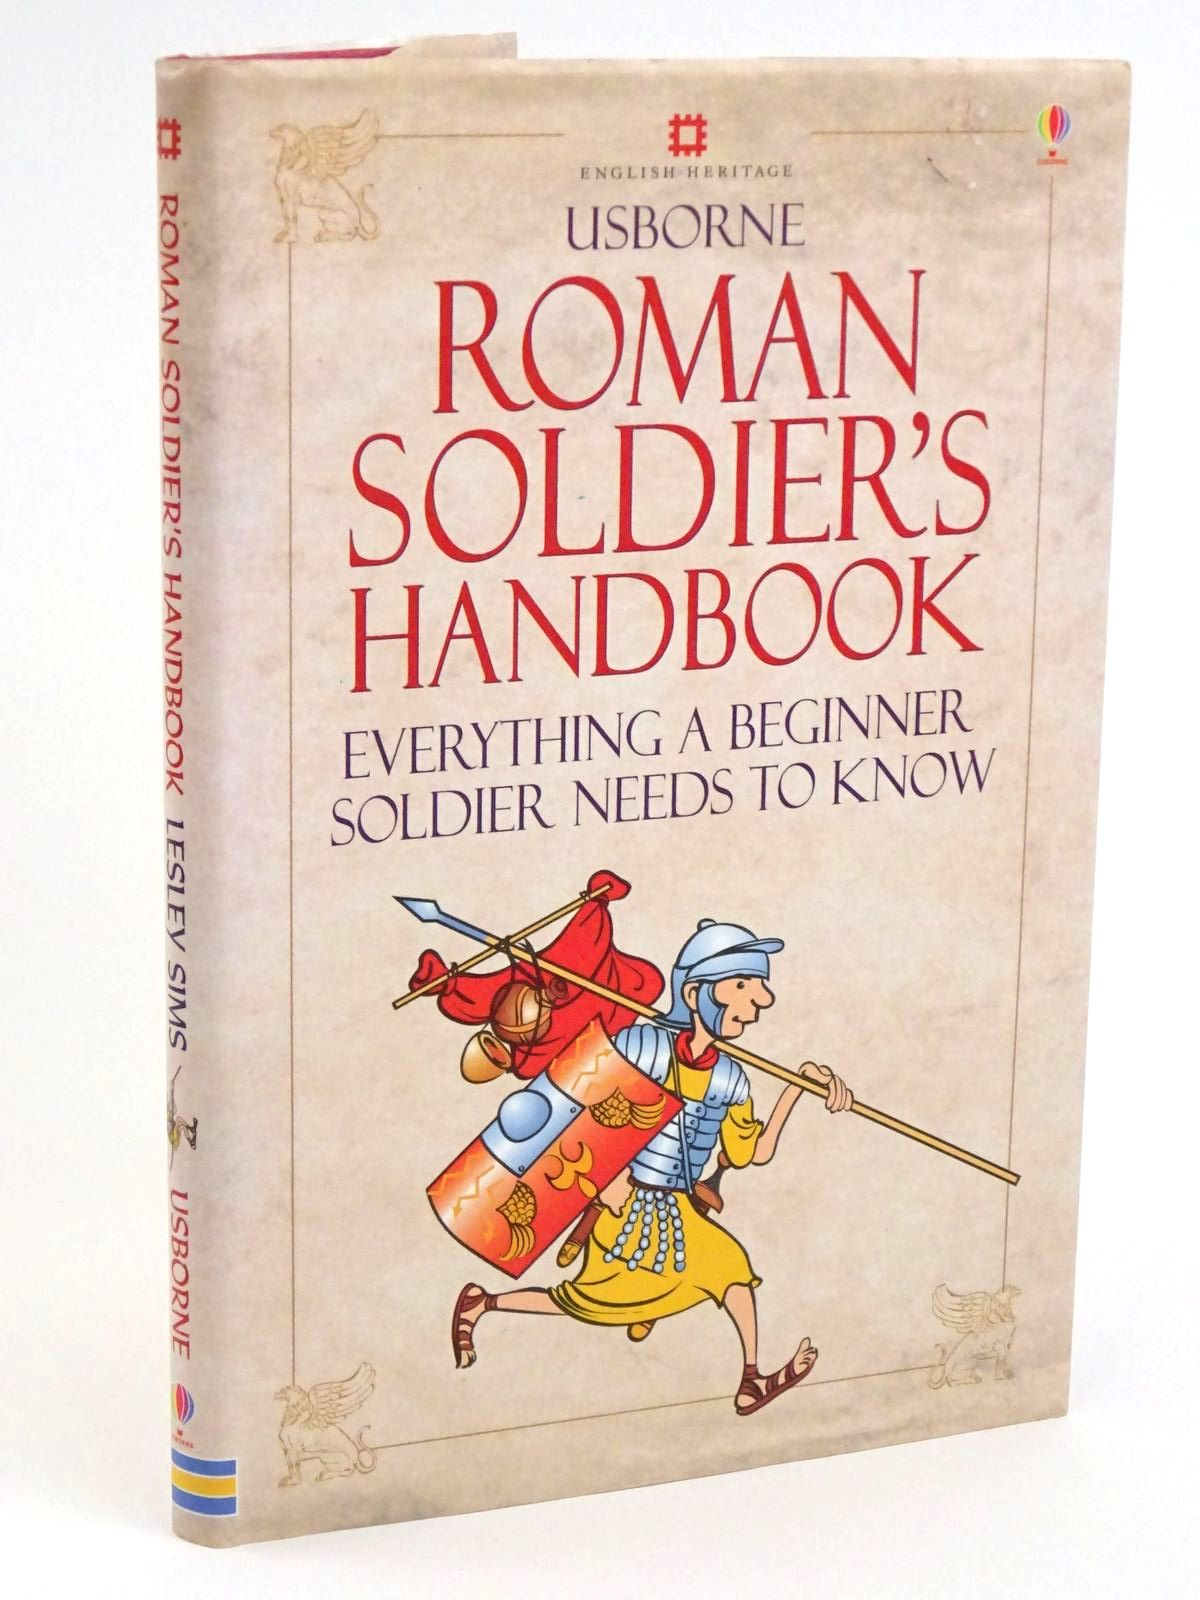 Photo of THE ROMAN SOLDIER'S HANDBOOK written by Sims, Lesley illustrated by McNee, Ian published by Usborne Publishing Ltd. (STOCK CODE: 1318071)  for sale by Stella & Rose's Books